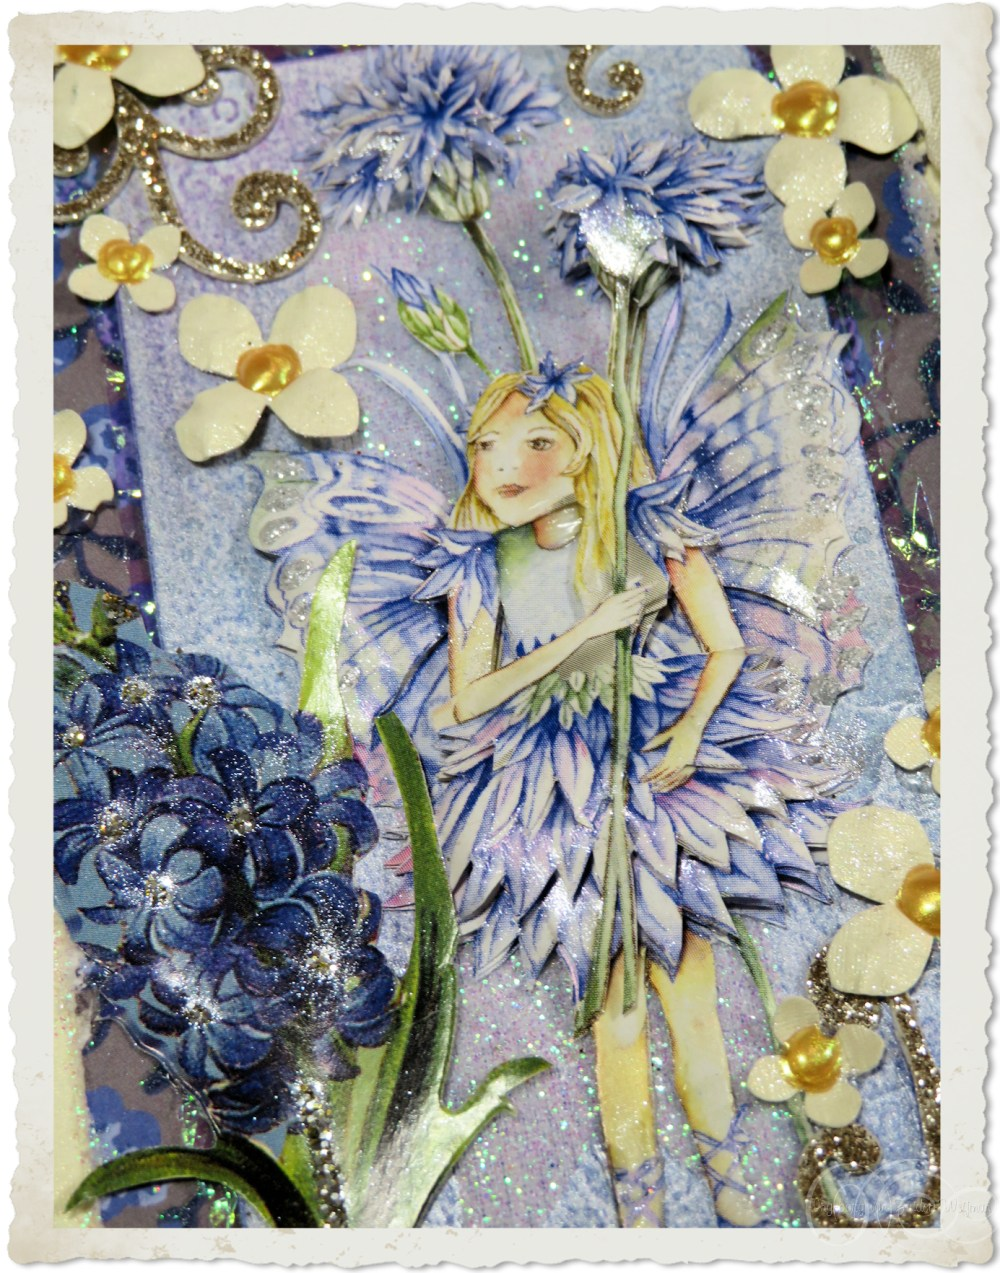 Flower fairy and punch flowers by Ingeborg van Zuiden